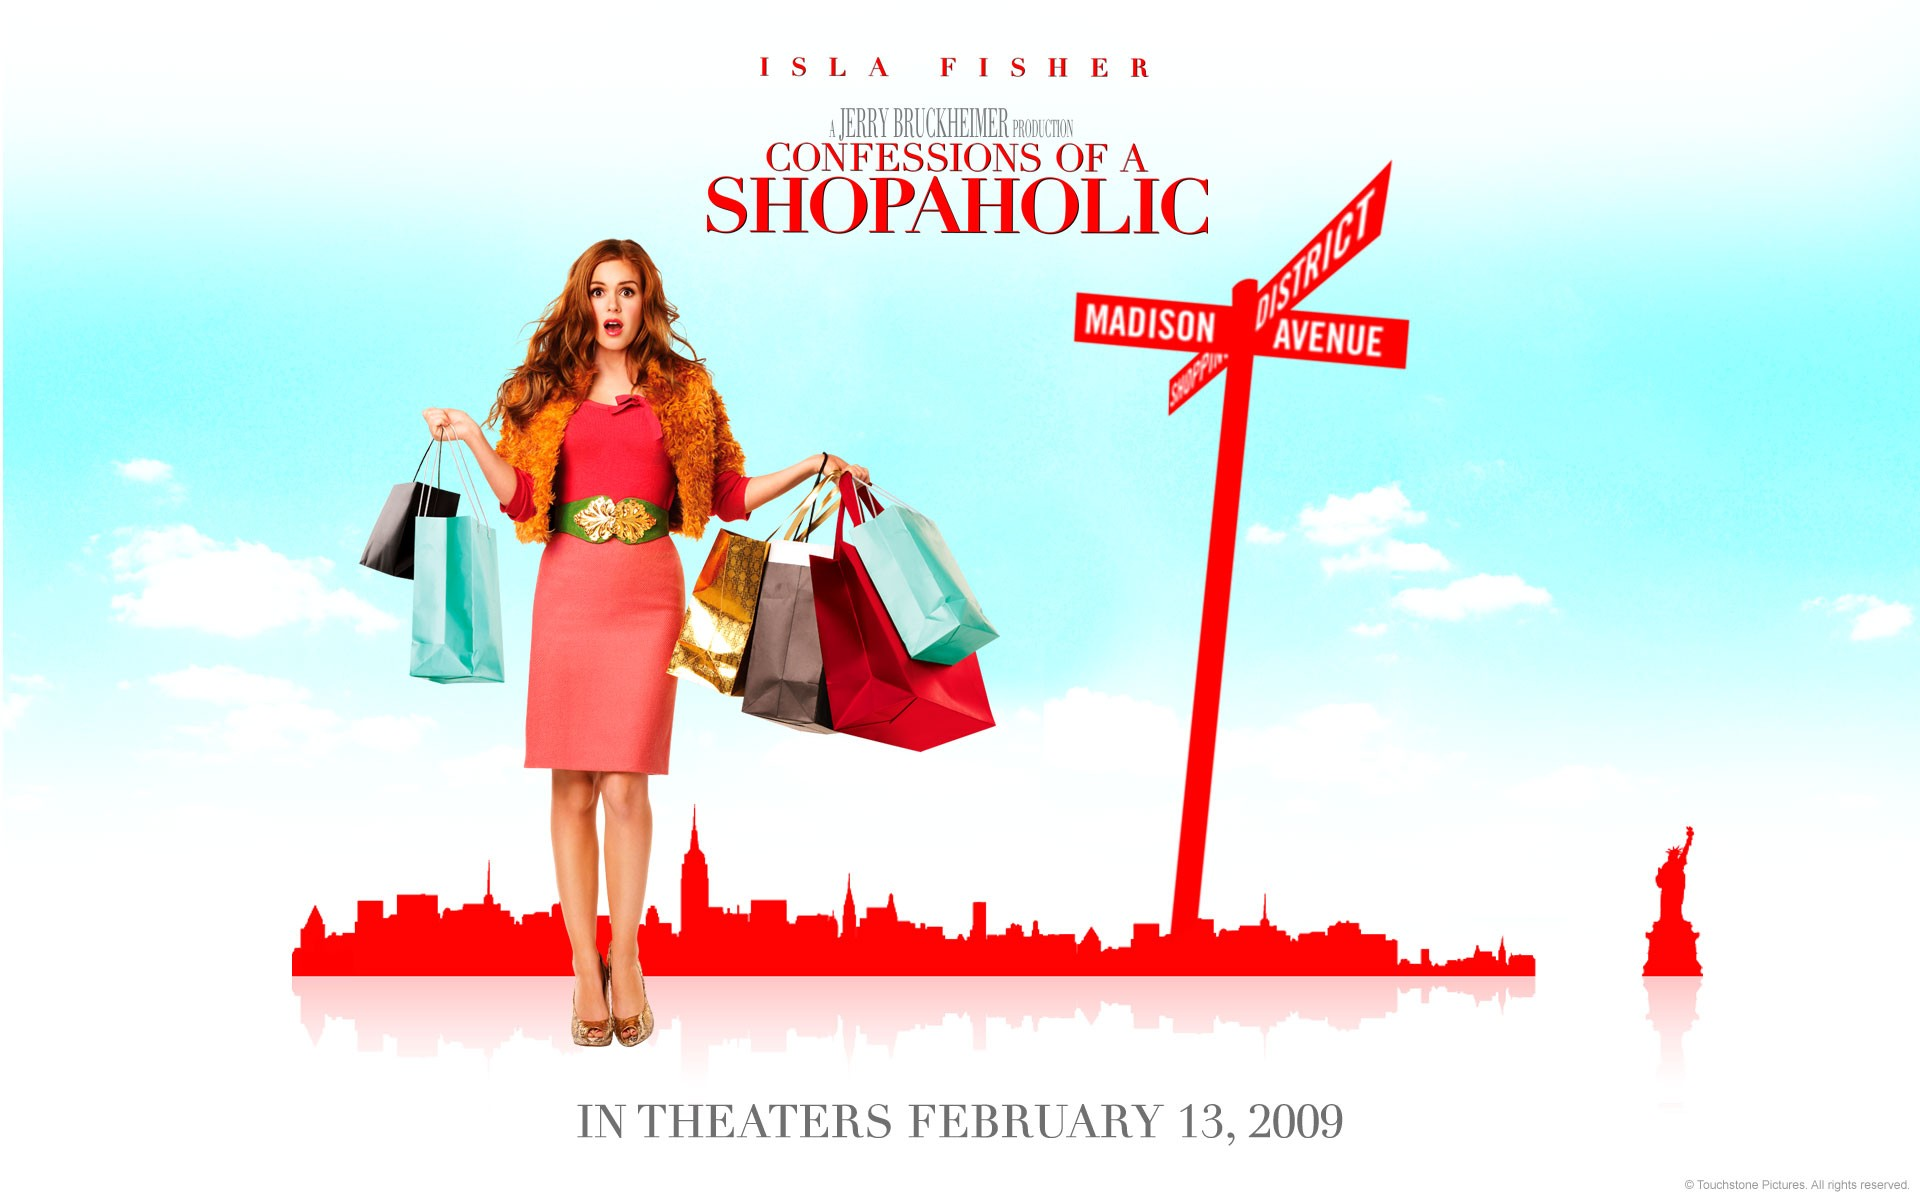 Un wallpaper del film I Love Shopping con Isla Fisher